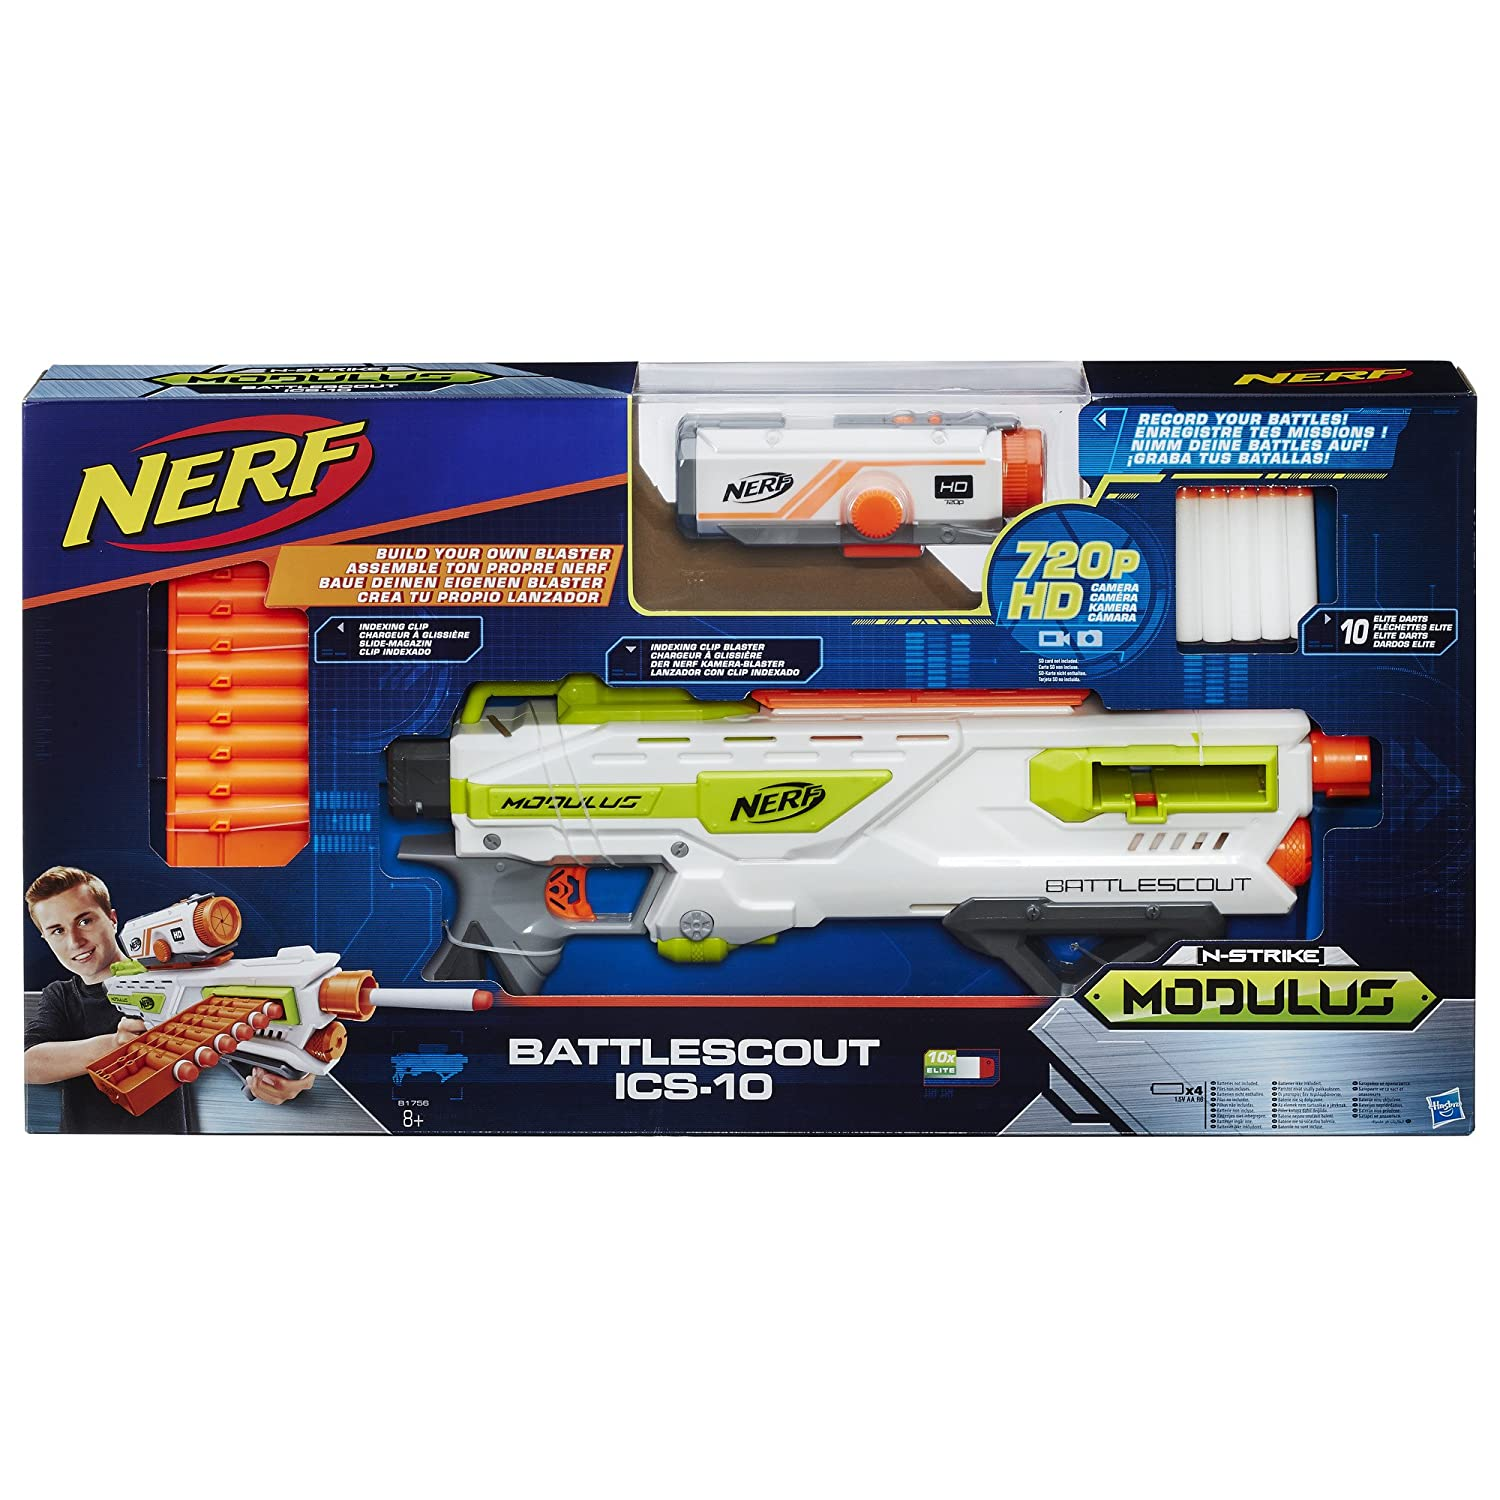 Hasbro Deutschland GmbH HAS65648 Nerf N-Strike Elite Modulus Battlescout  Ics-10 Cup And Ball Game: Amazon.co.uk: Toys & Games